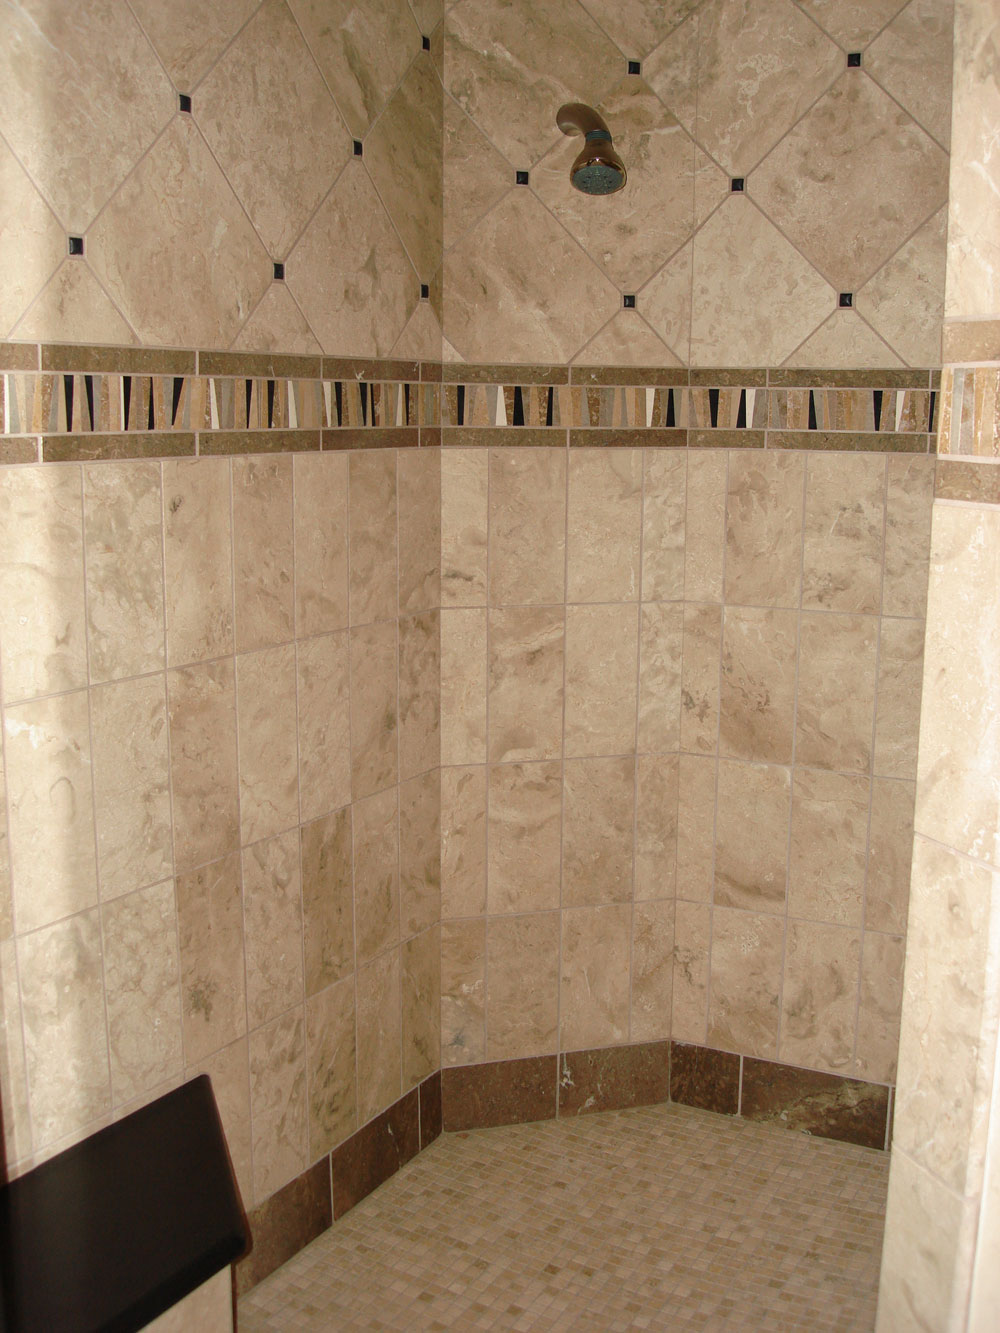 17 16 15. 20 magnificent ideas and pictures of travertine bathroom wall tiles